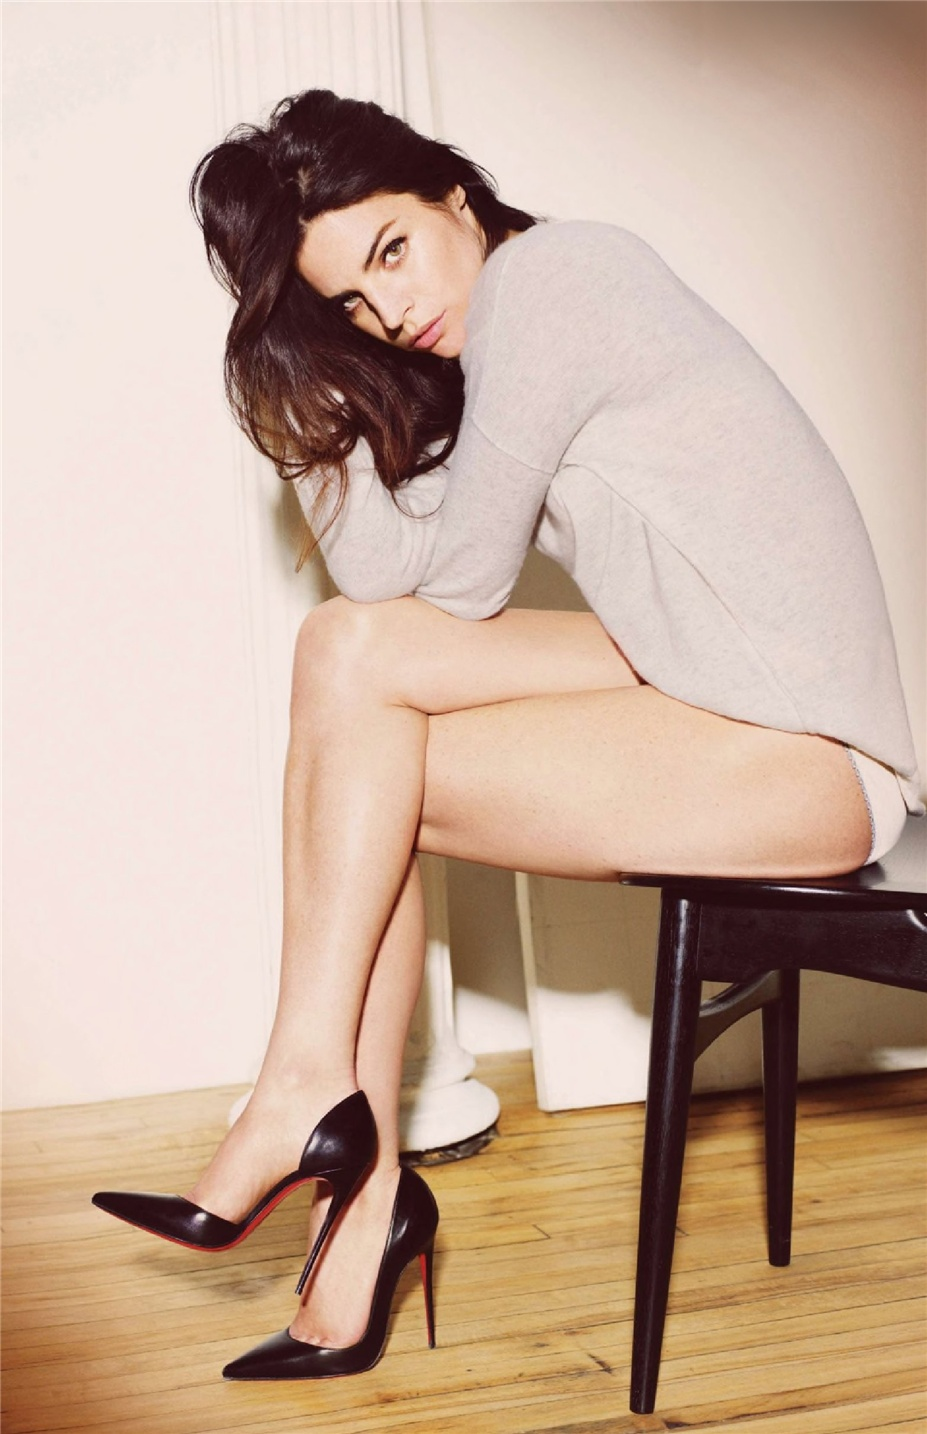 Джулия Рестон Ротфильд / Julia Restoin Roitfeld by Guy Aroch in GO UK September 2014